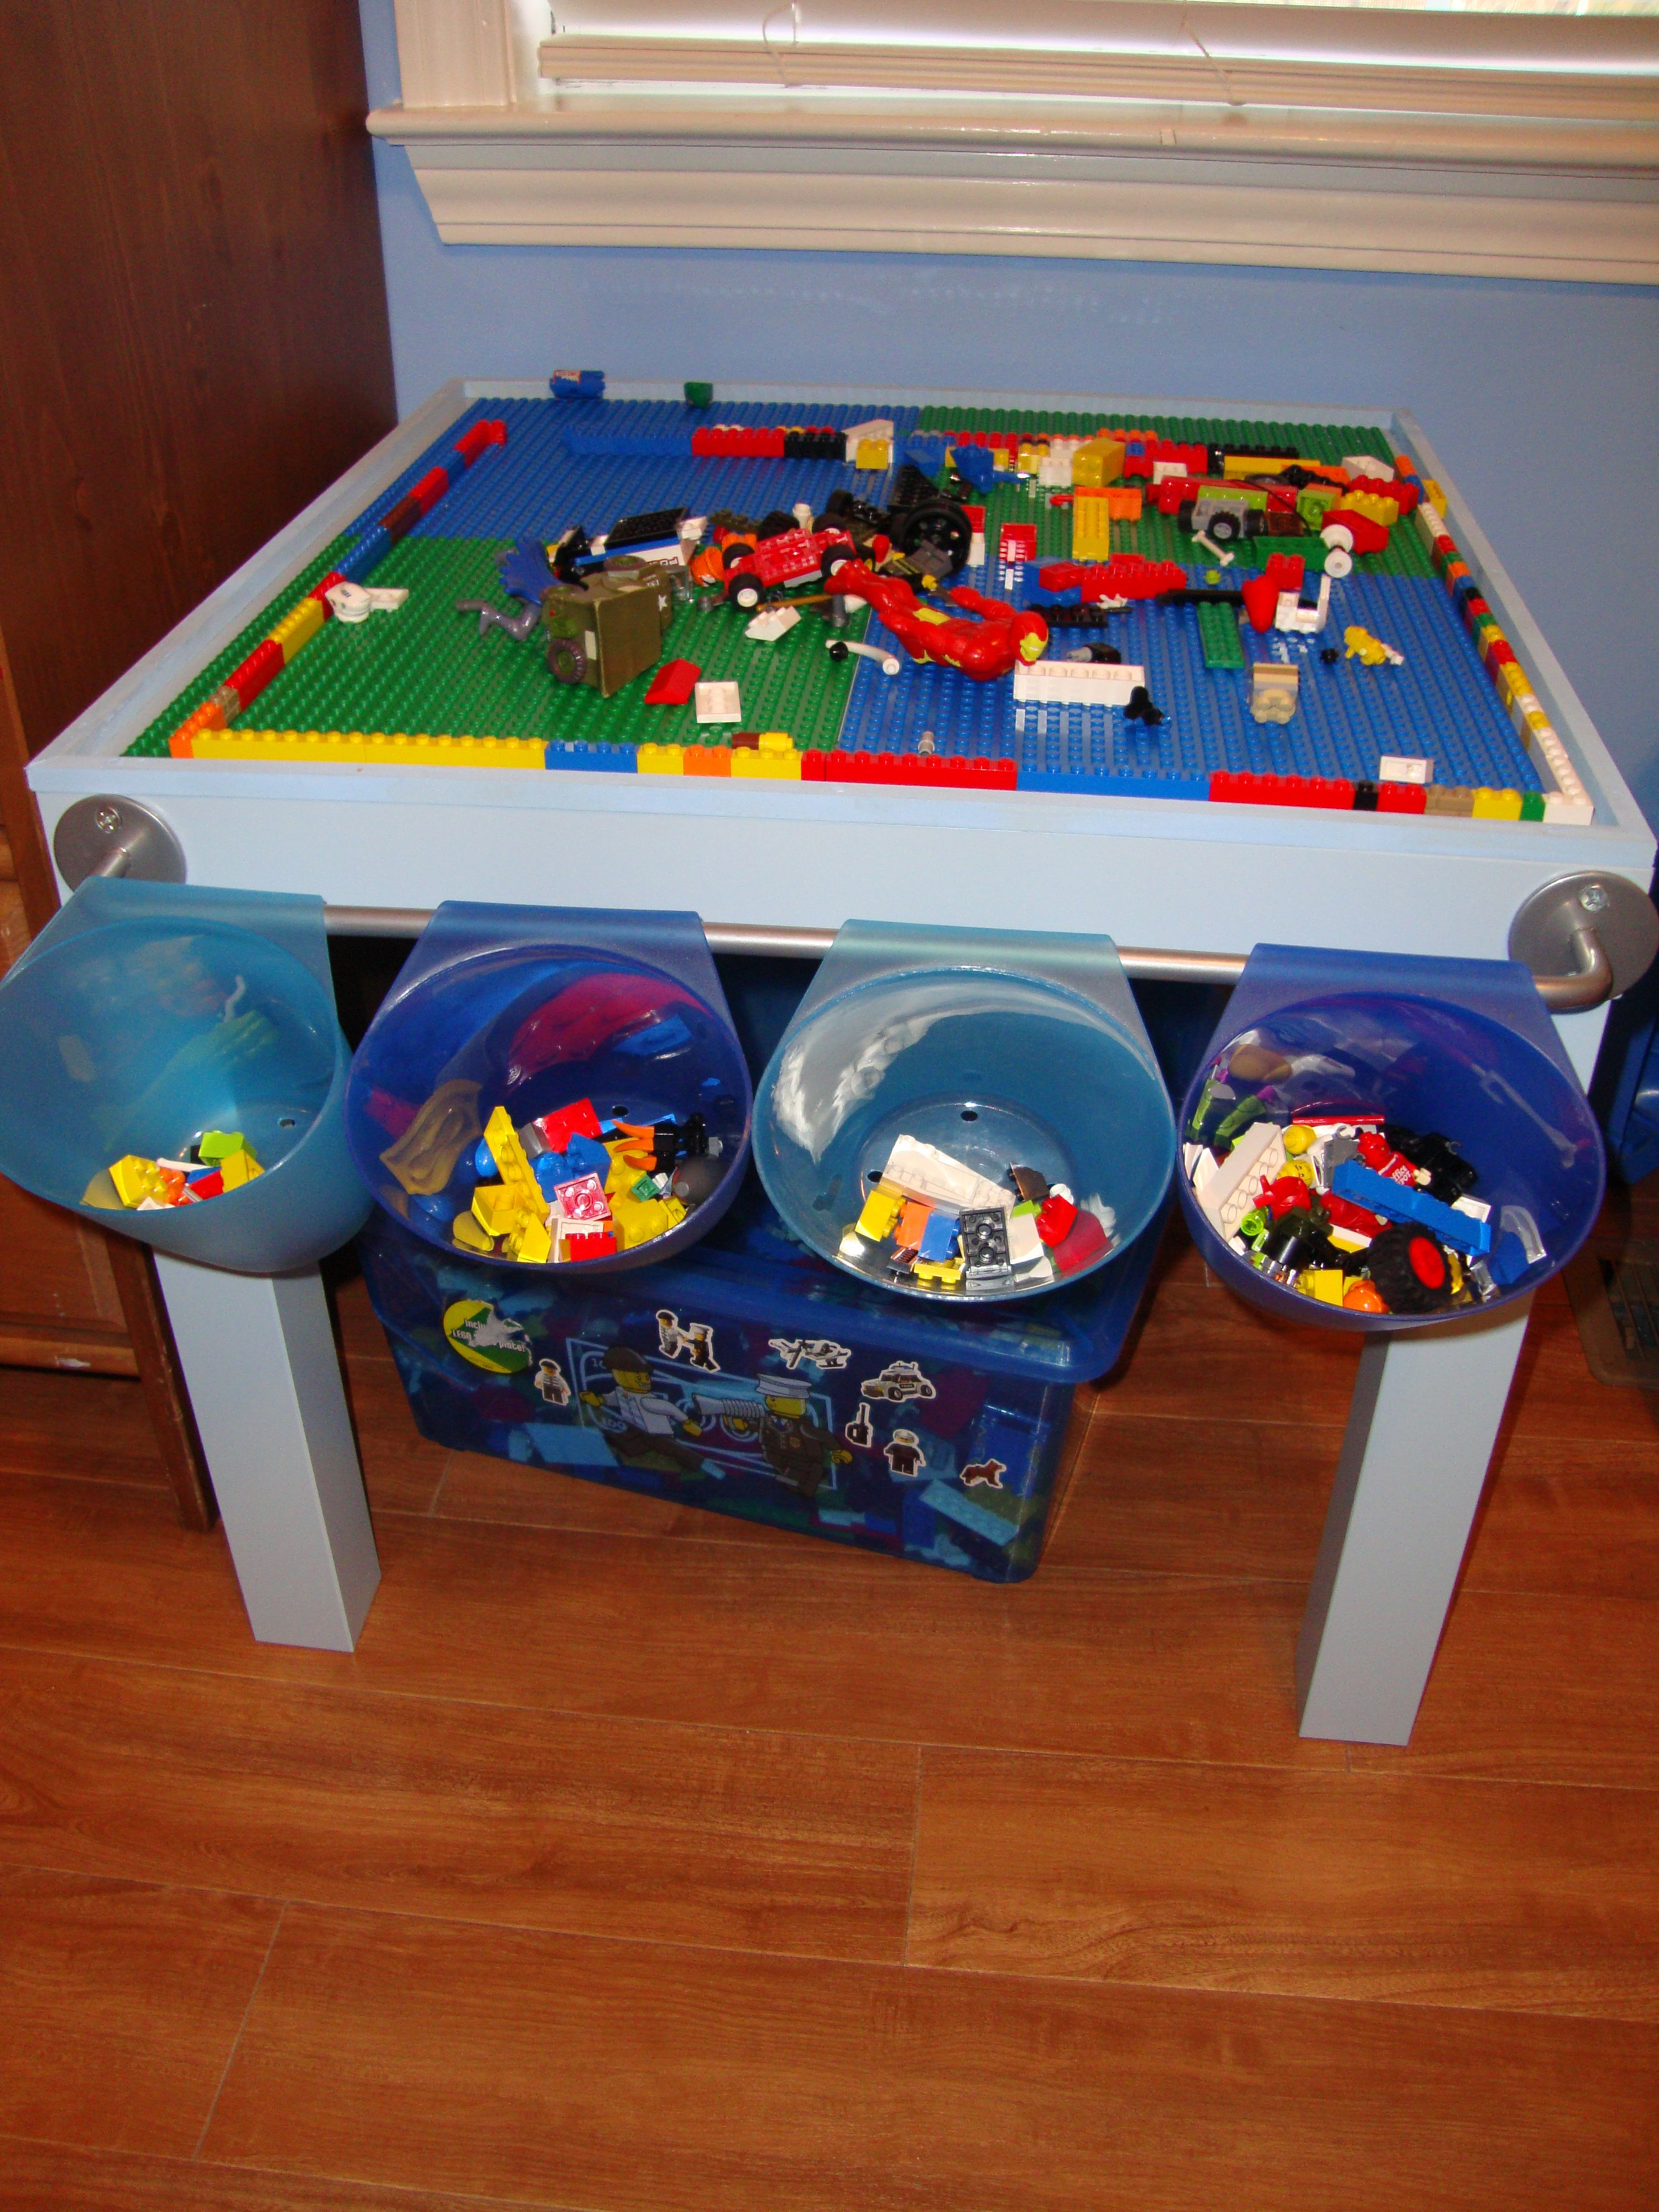 Diy Lego Table 8 Ikea Side Table 4 5 Base Plates From